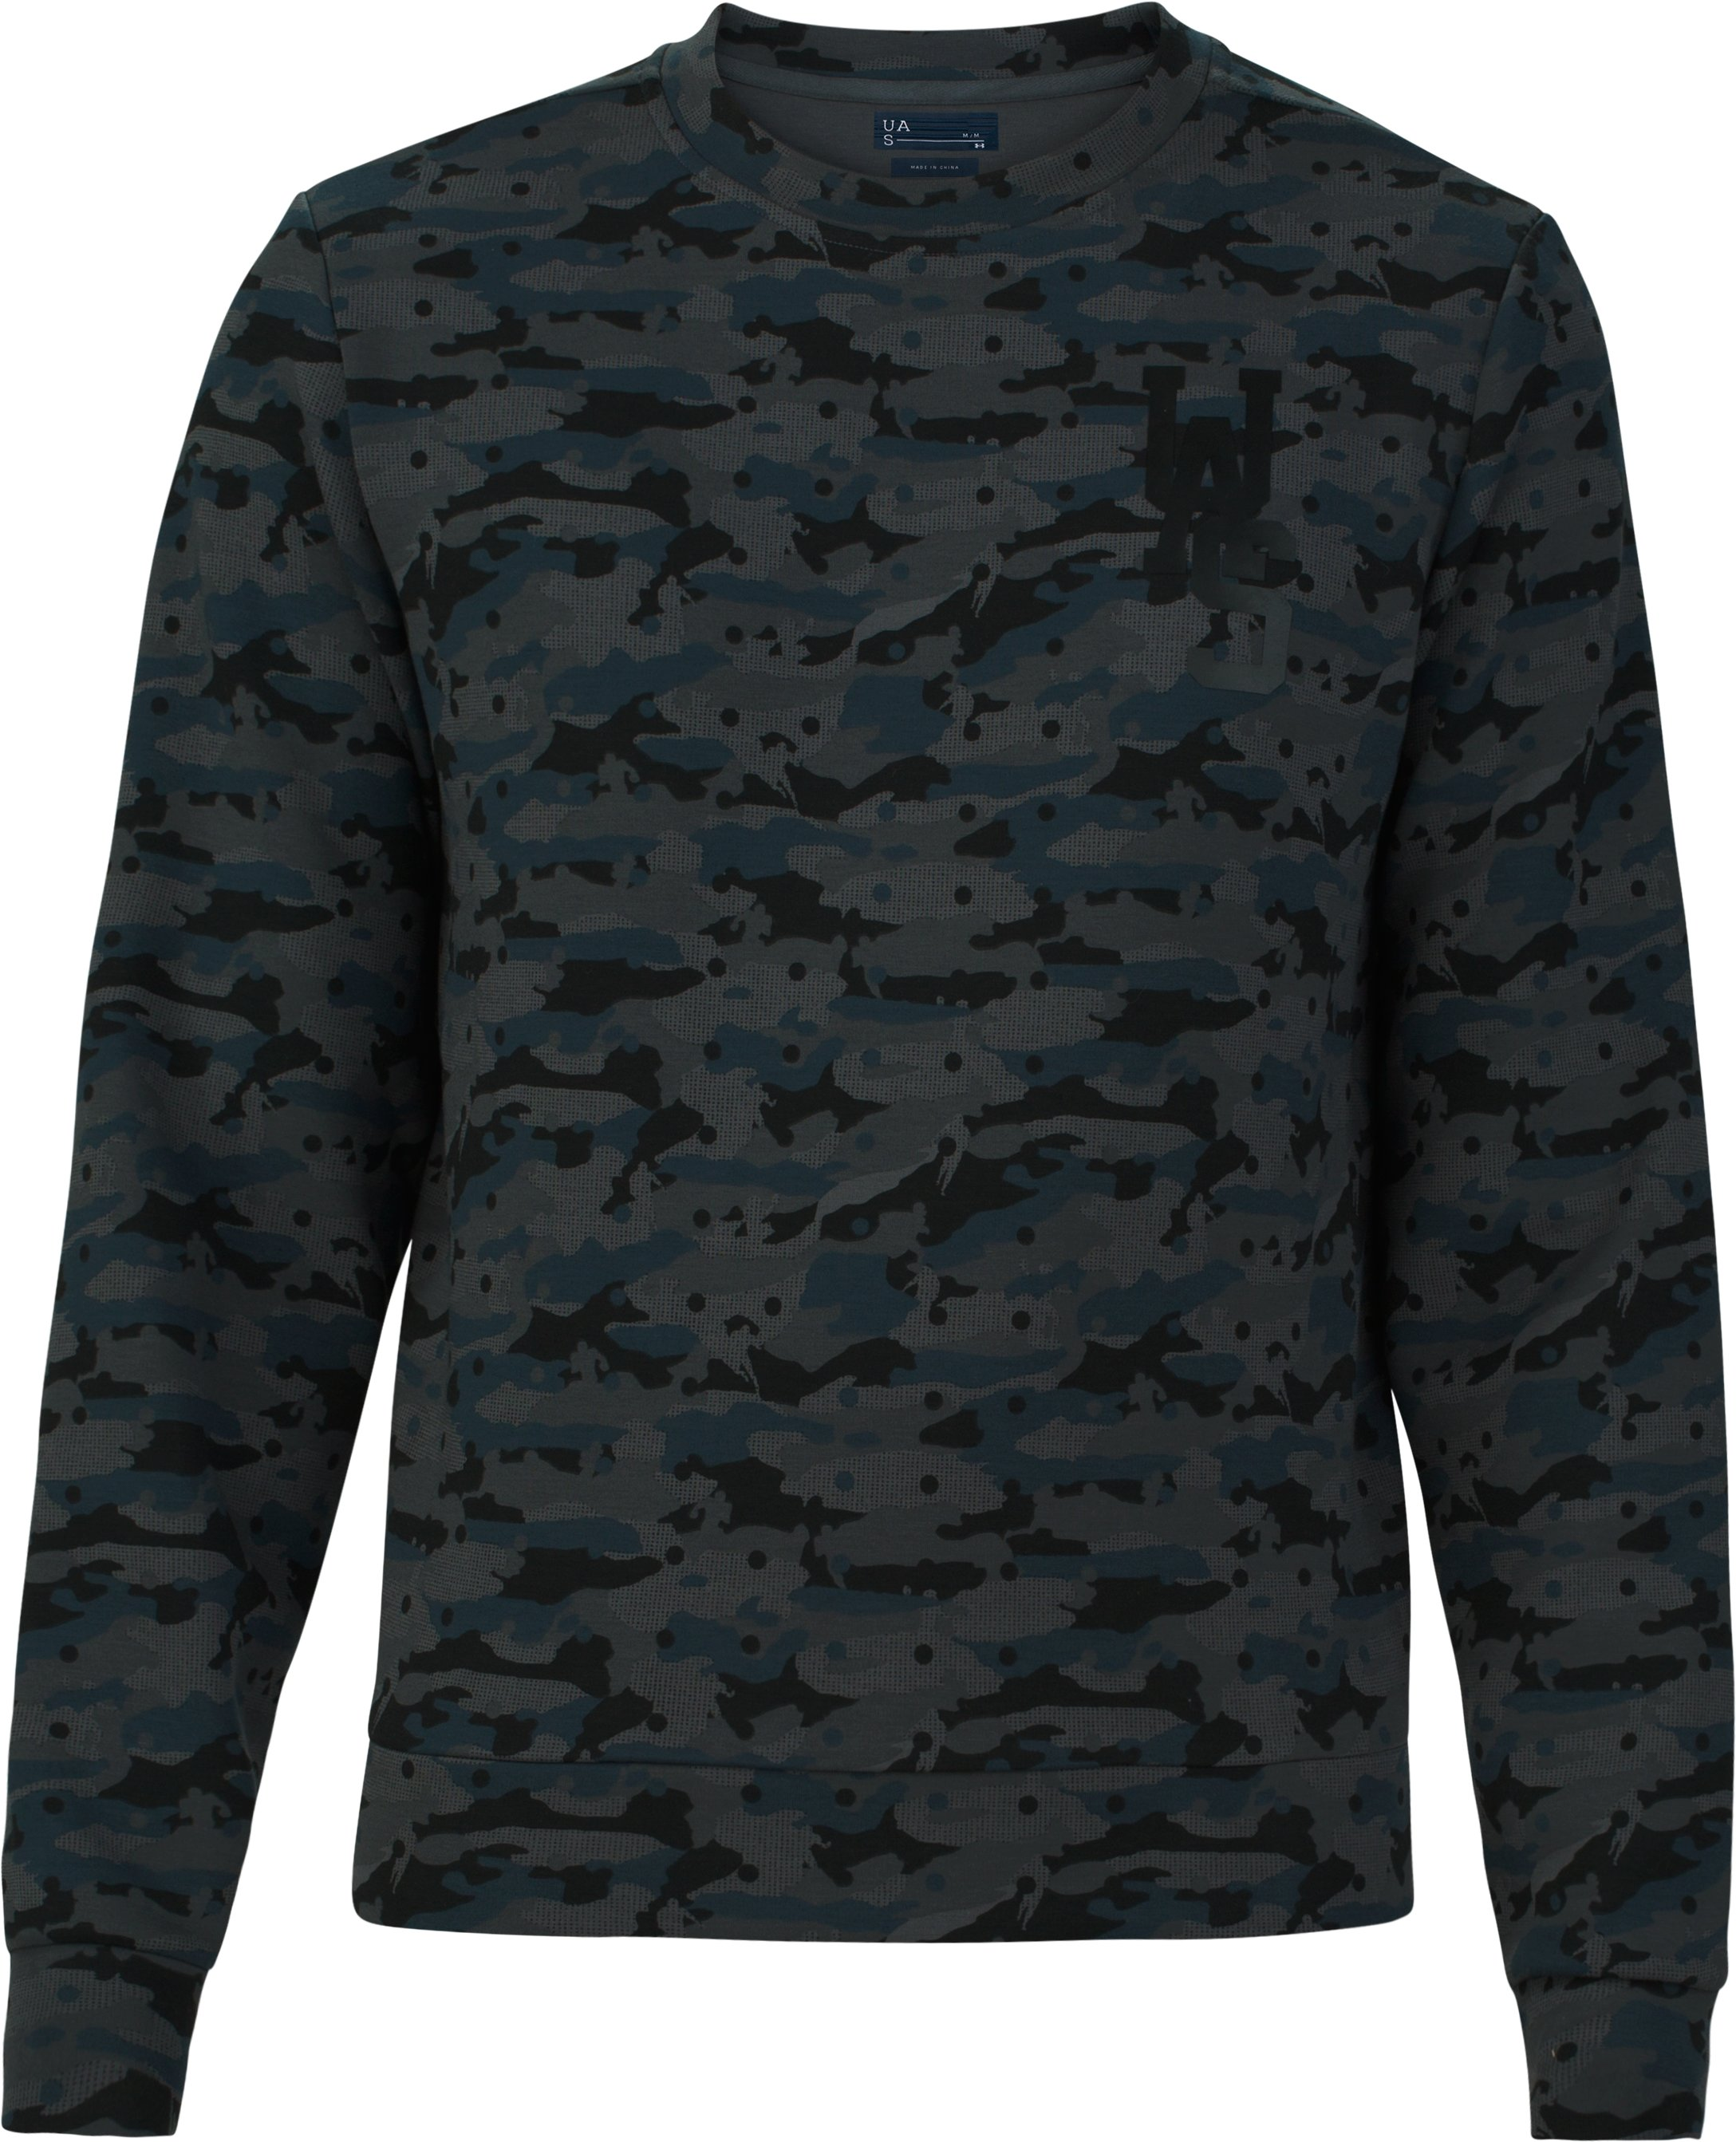 Men's UAS Tailgate Graphic Crew Sweatshirt, Navy,